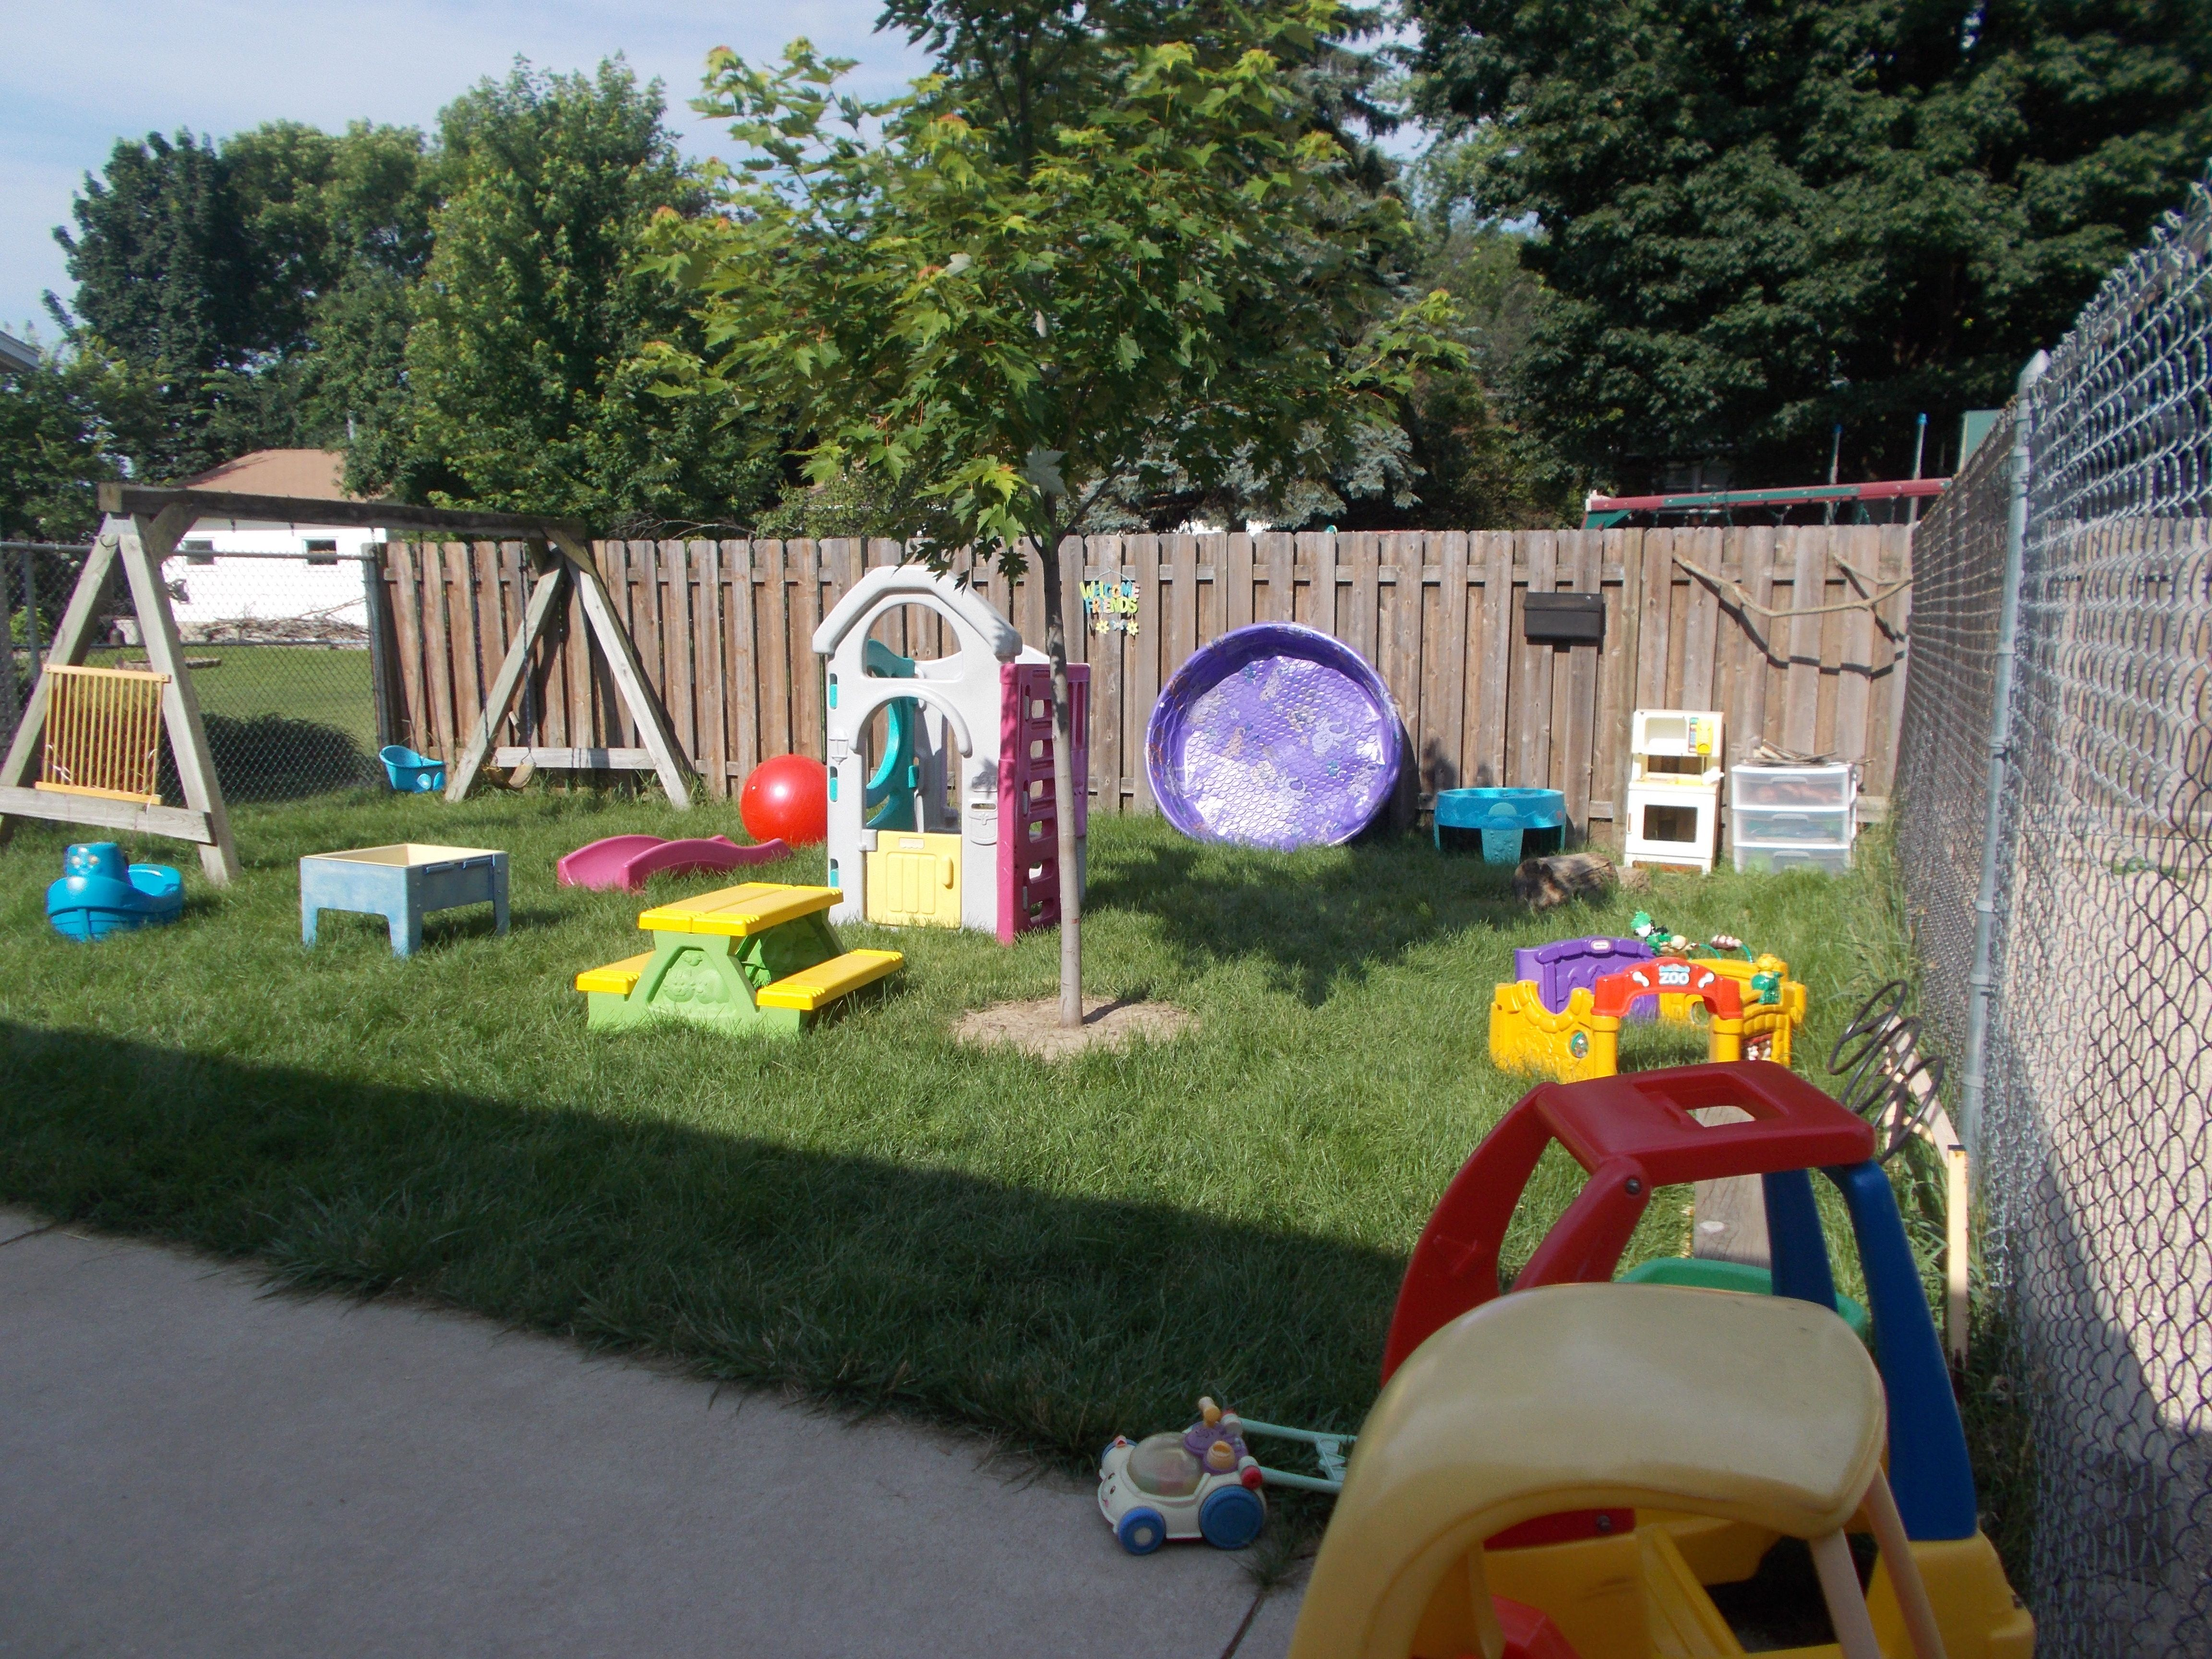 The Toddler Playground Is Set Up With Many Centers To Accomodate The Four Toddlers And Their Teacher Toddler Outdoor Toddler Playground Outdoor Playground